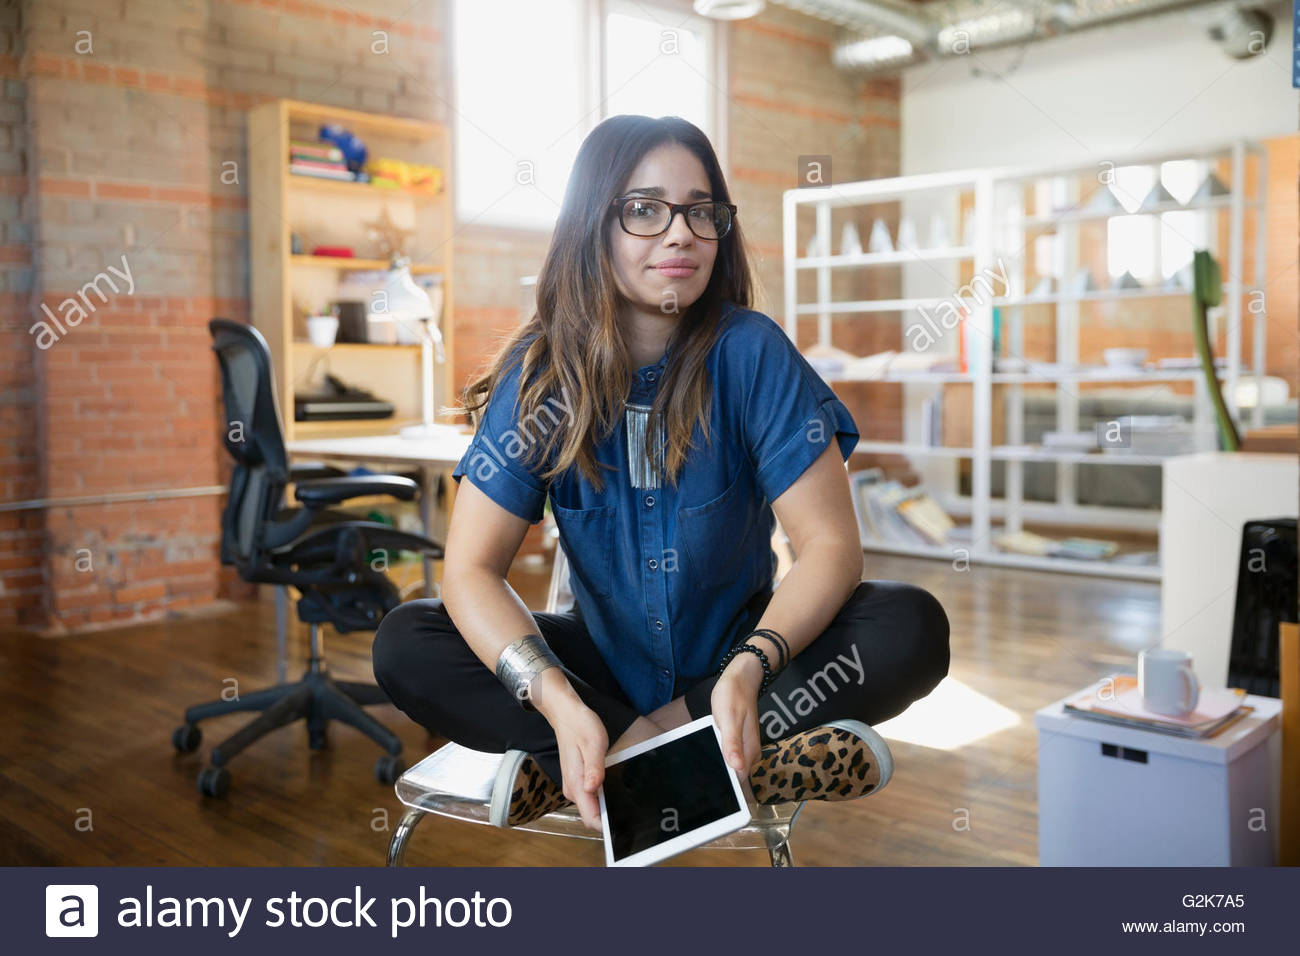 Portrait creative businesswoman cross-legged with digital tablet in office - Stock Image